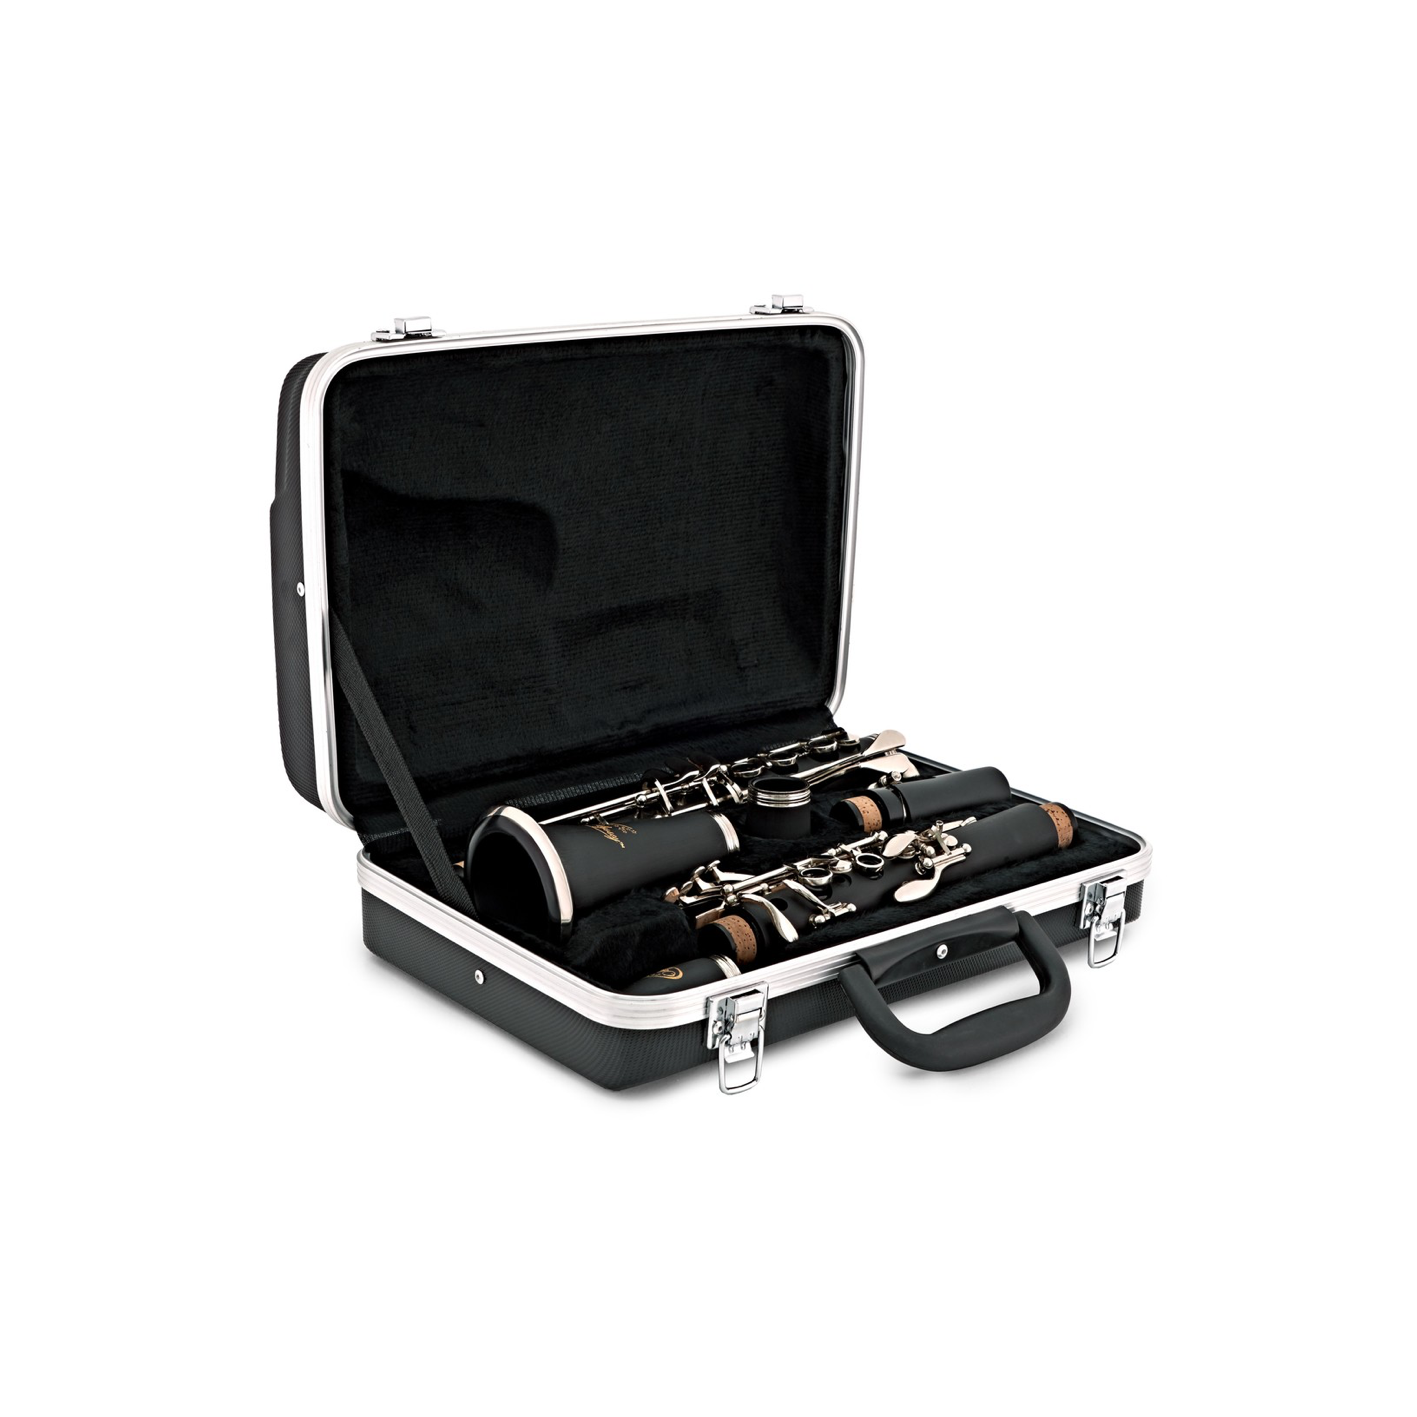 Odyssey OCL120 Debut Clarinet outfit w' case